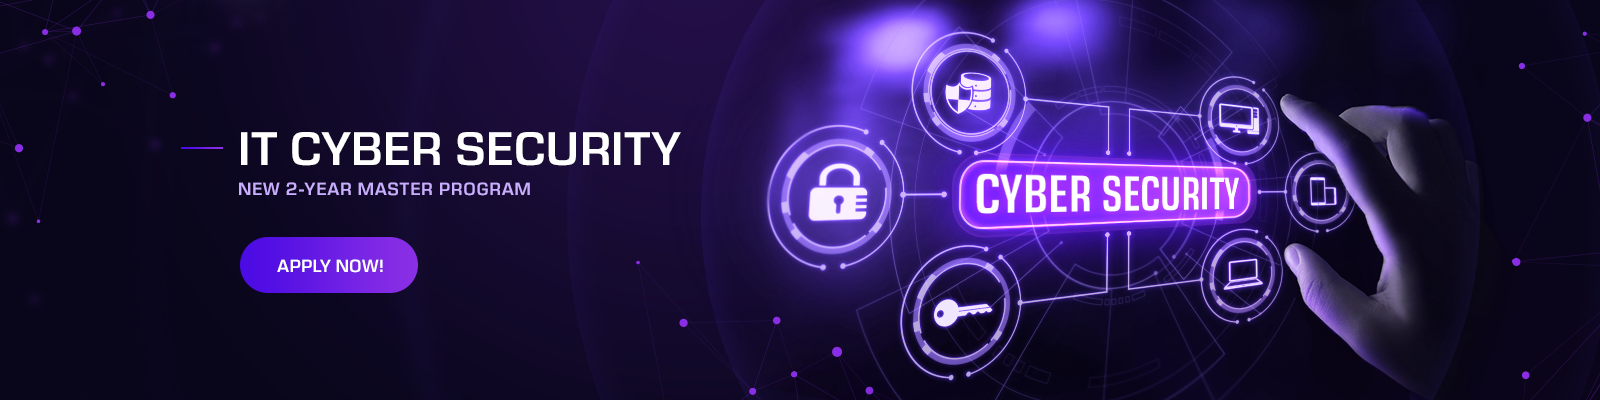 IT cyber security